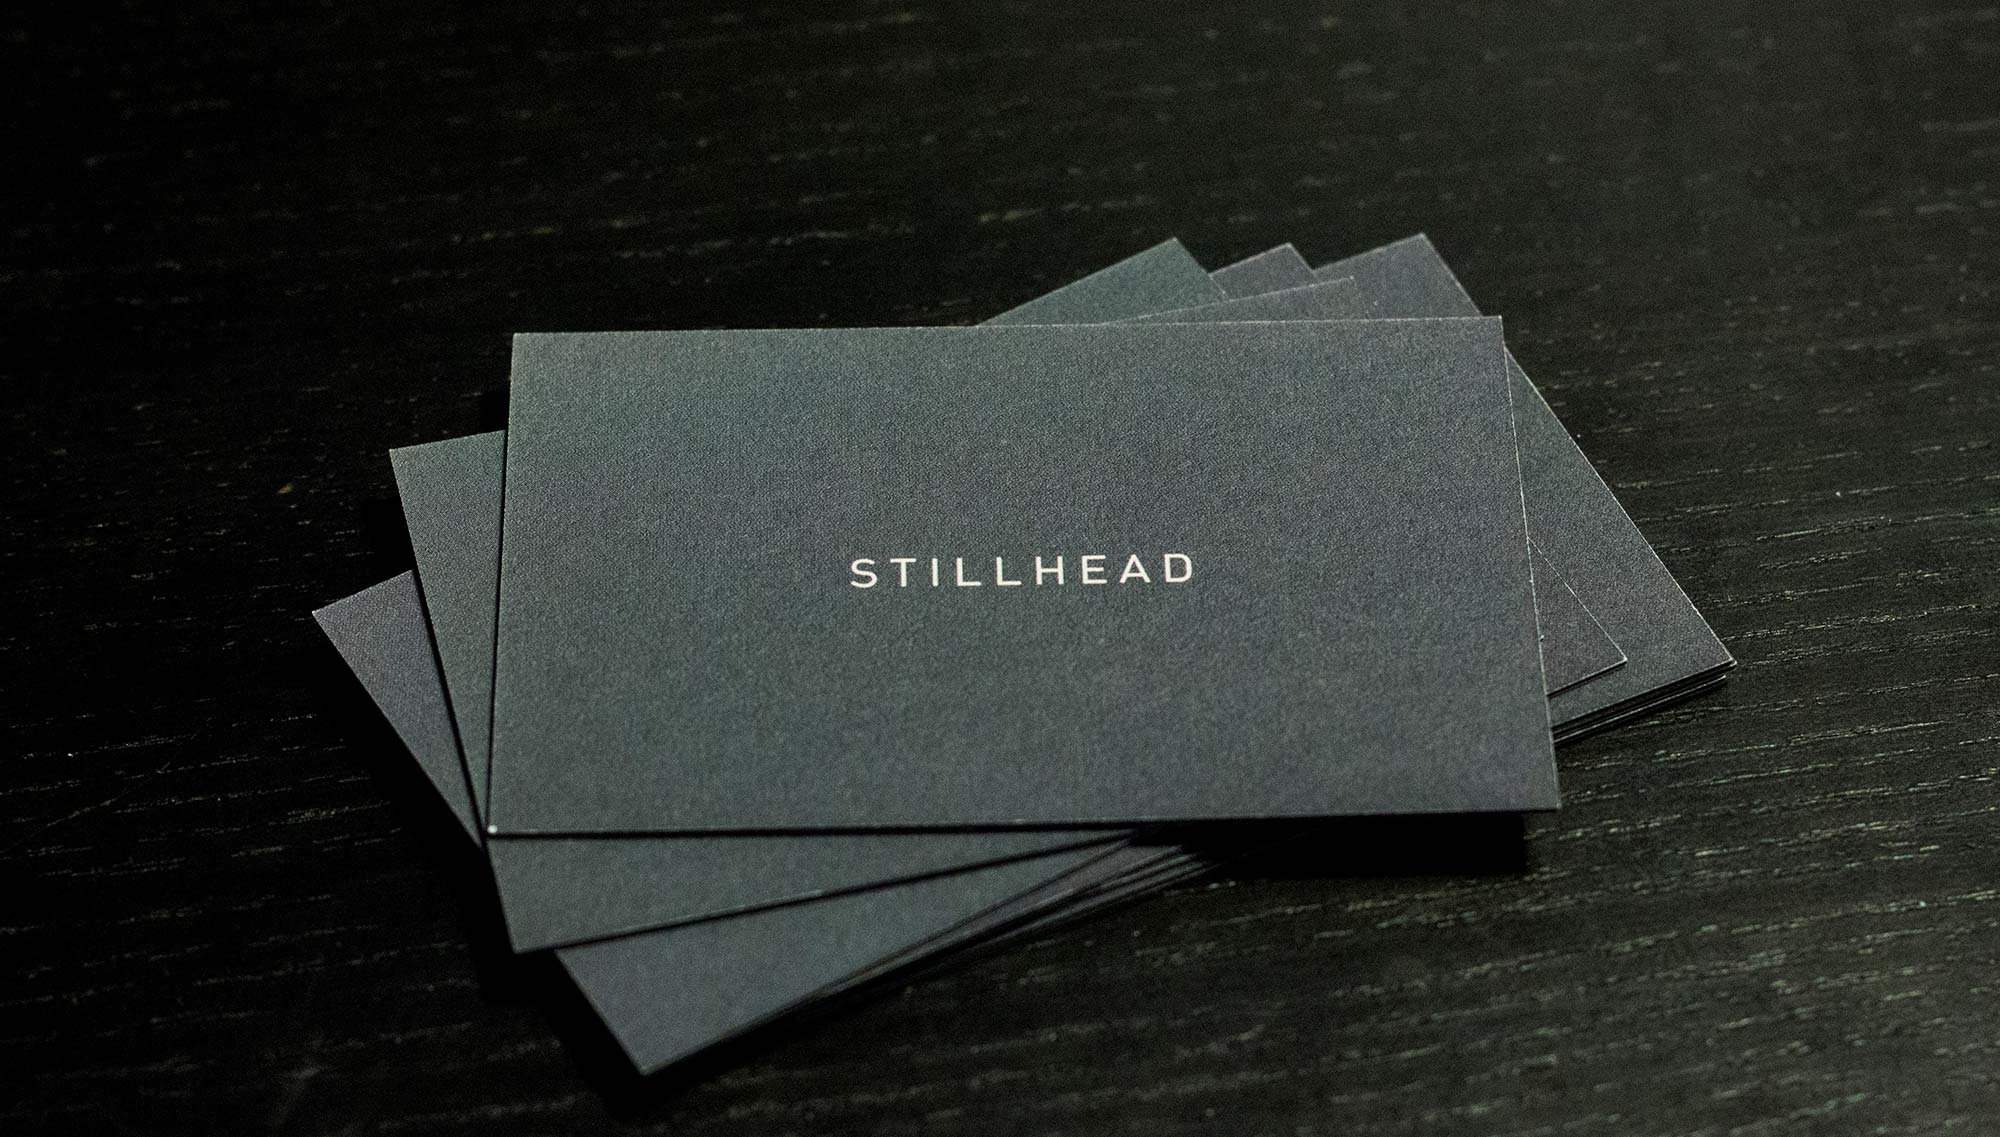 Stillhead - Business Cards